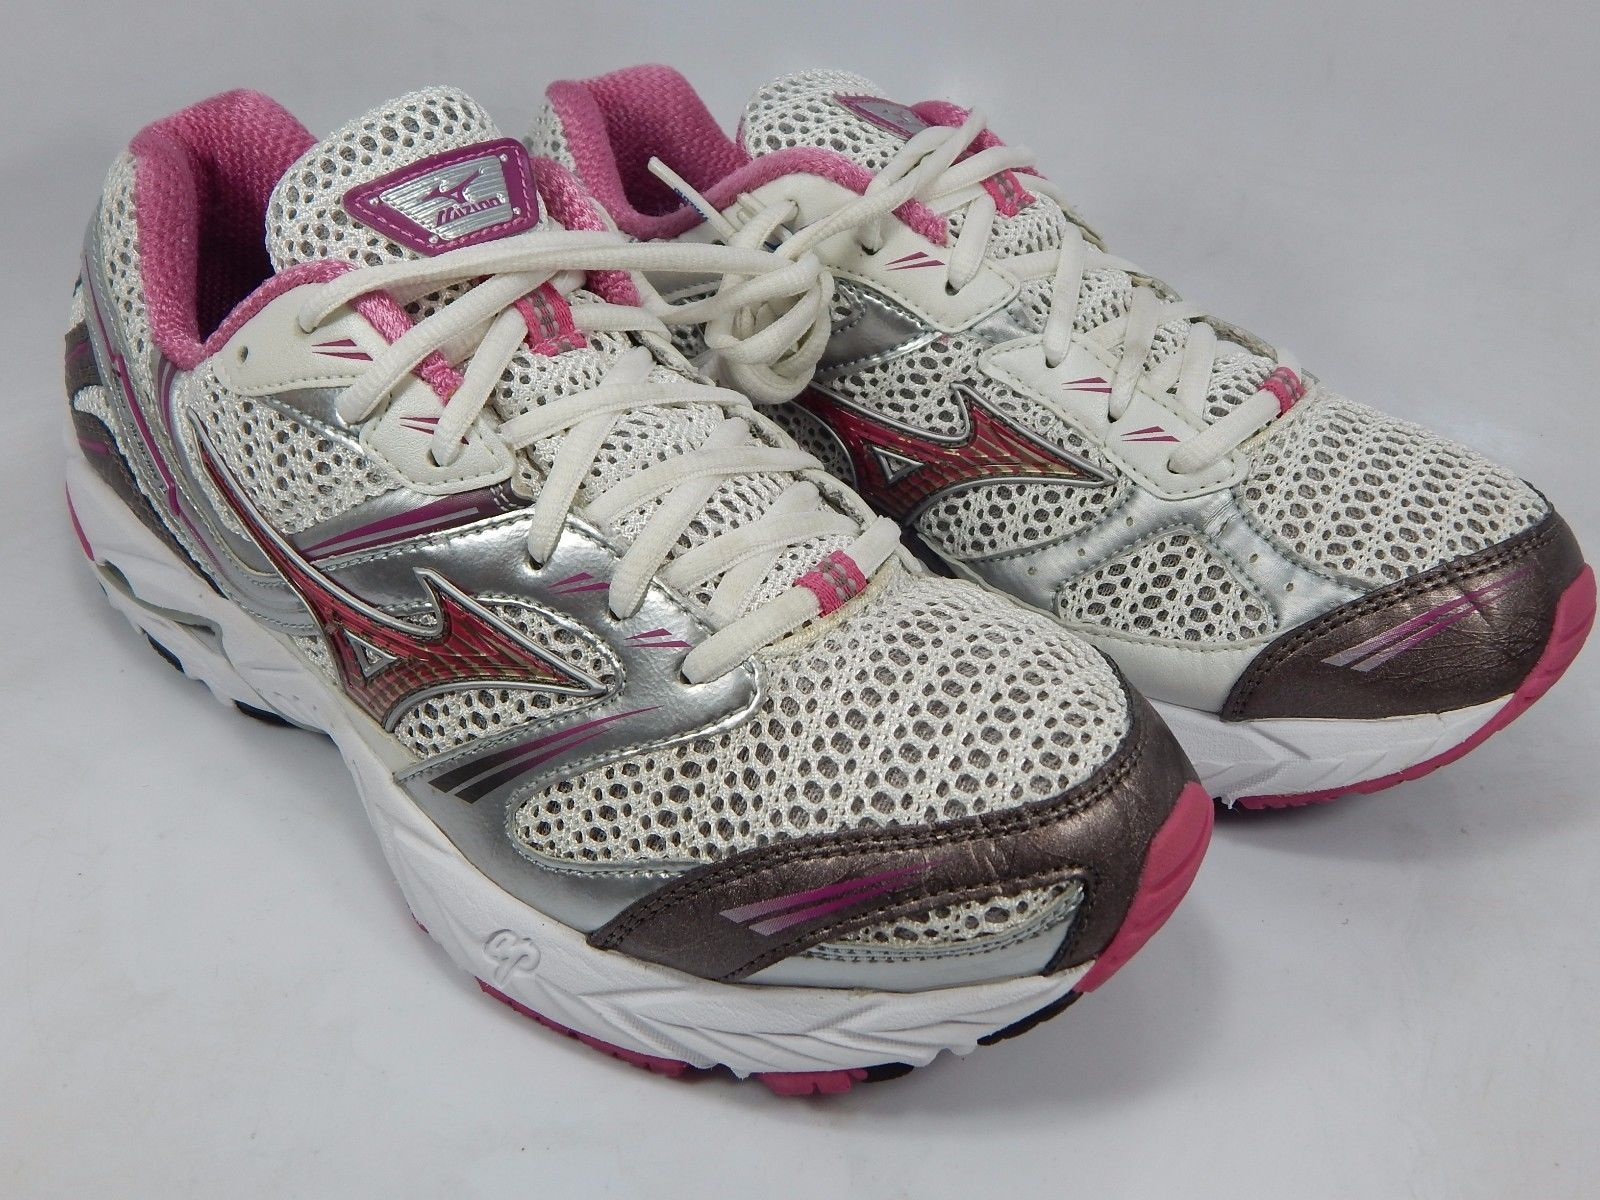 Mizuno Wave Alchemy 8 Women's Running Shoes Size US 9.5 M (B) EU 40.5 White Pink